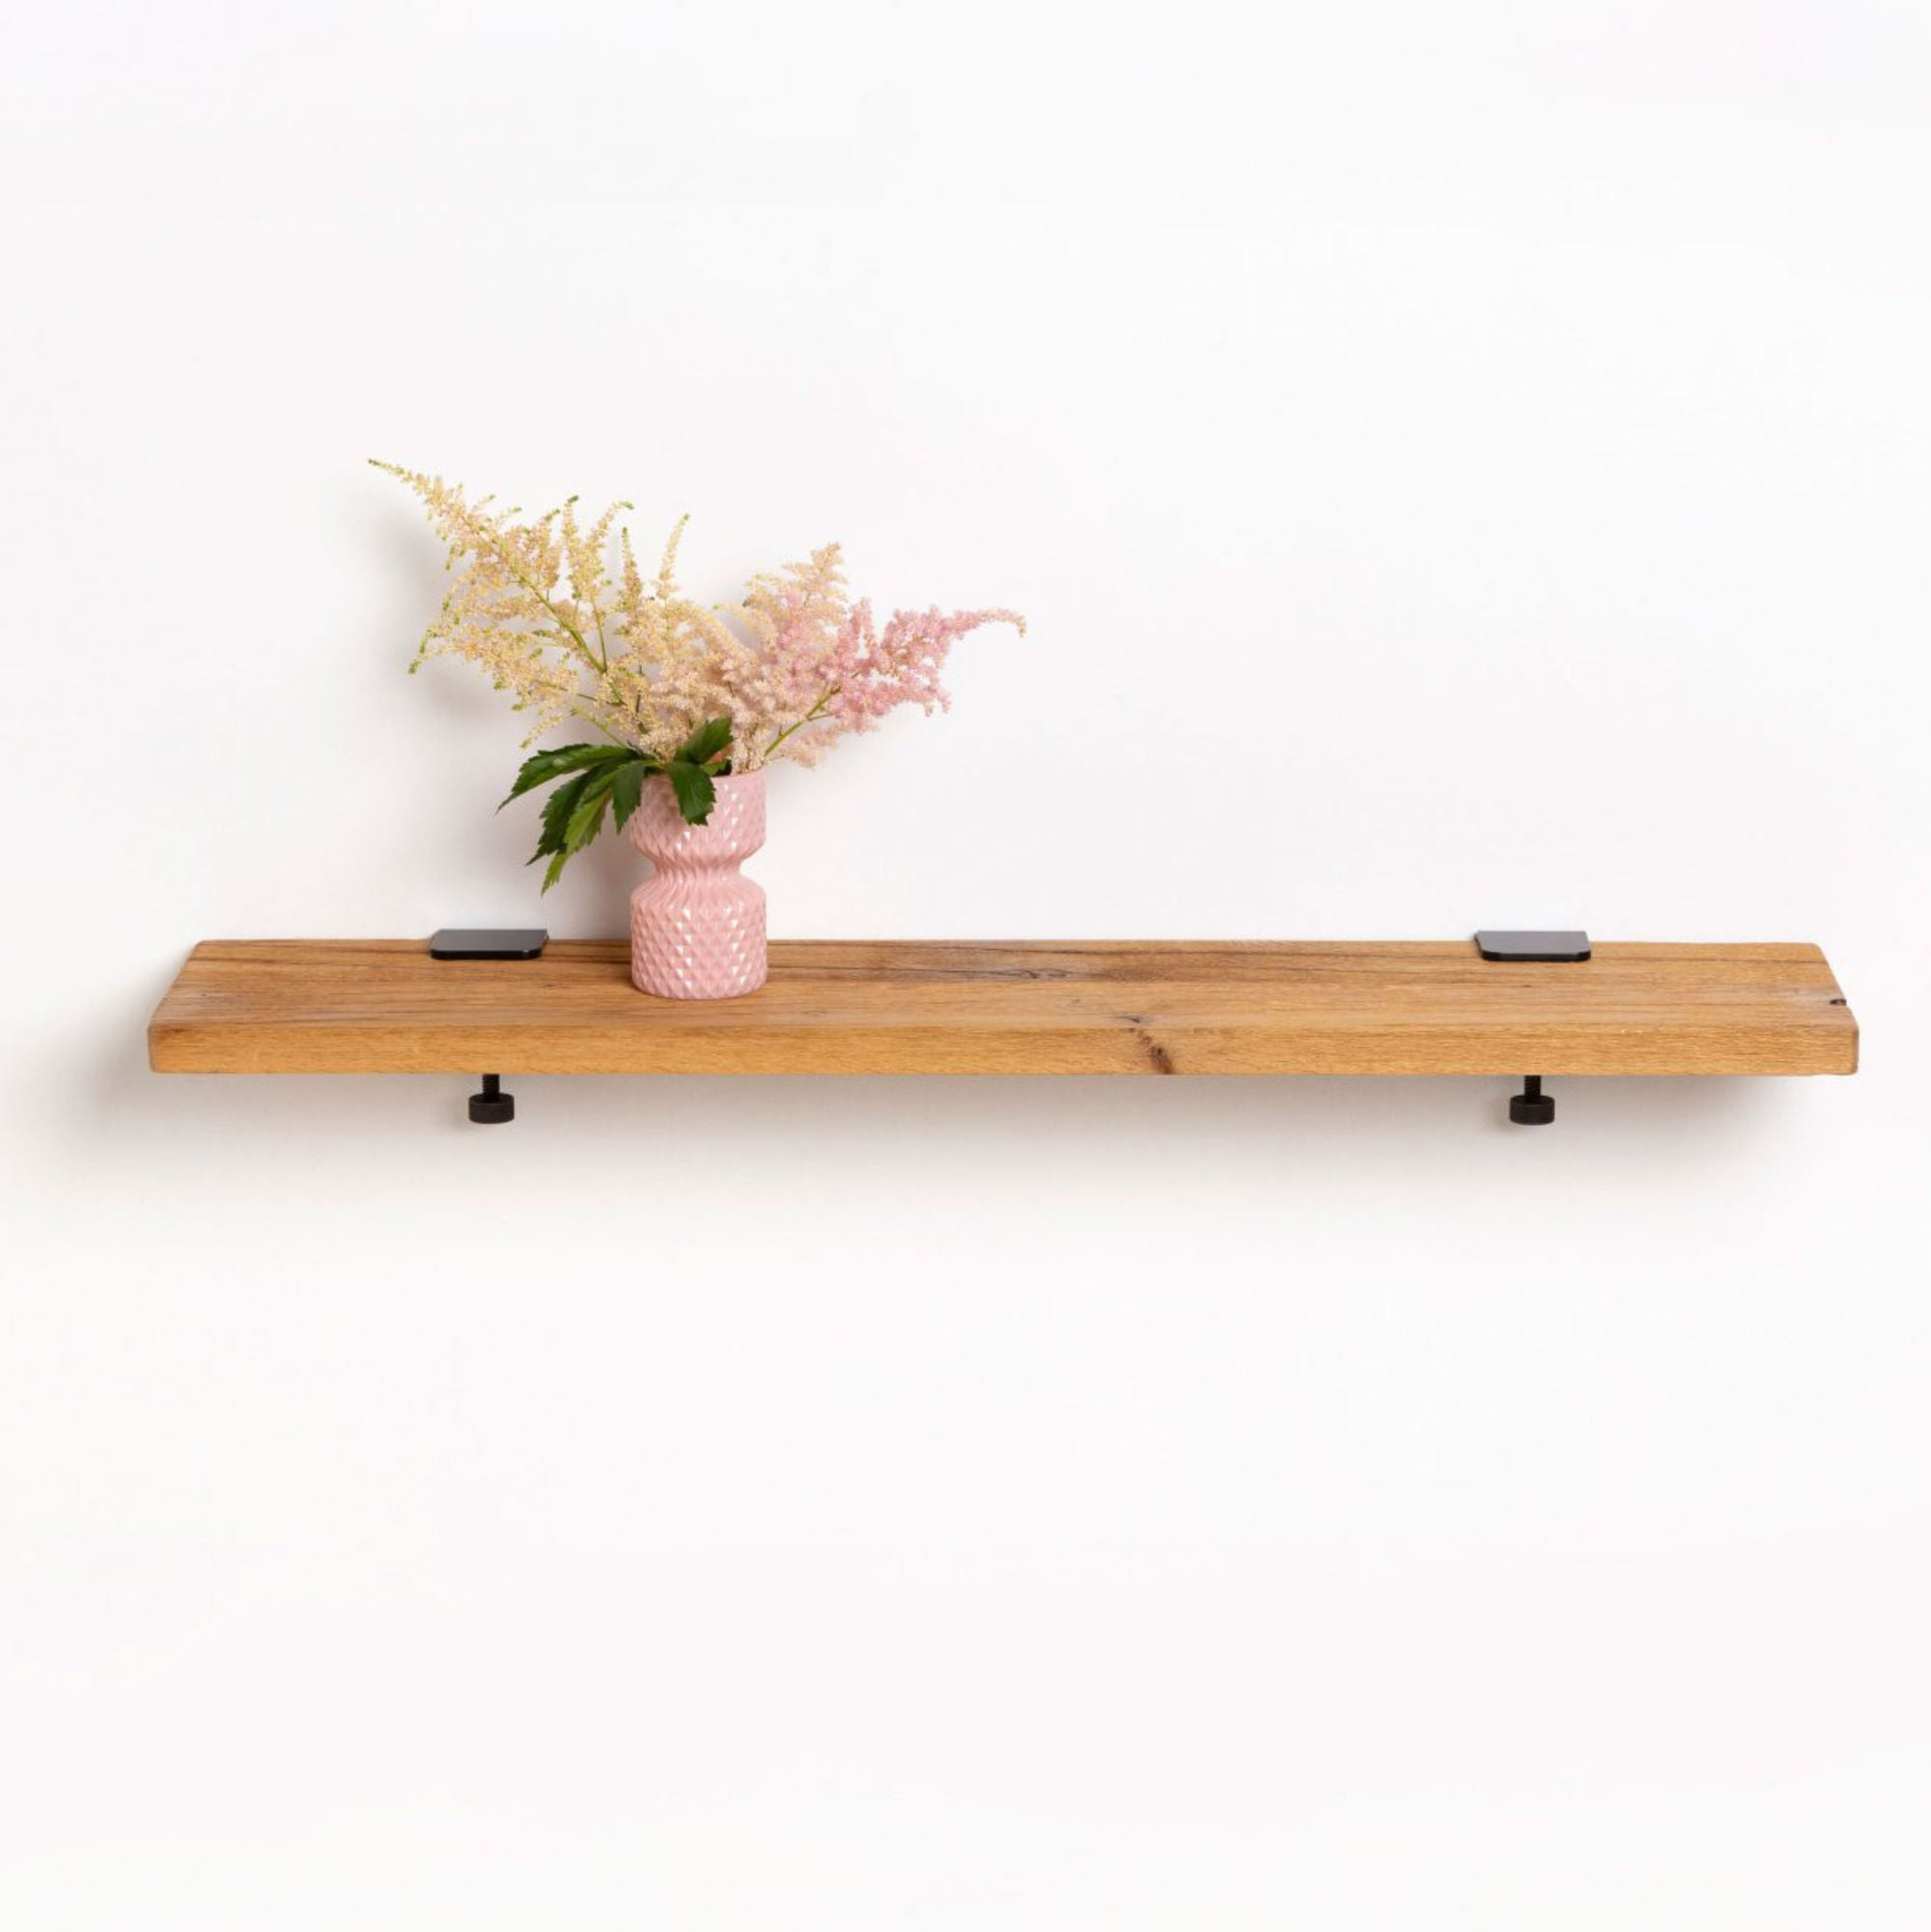 Tiptoe Reclaimed wood shelf, 90 * 20cm